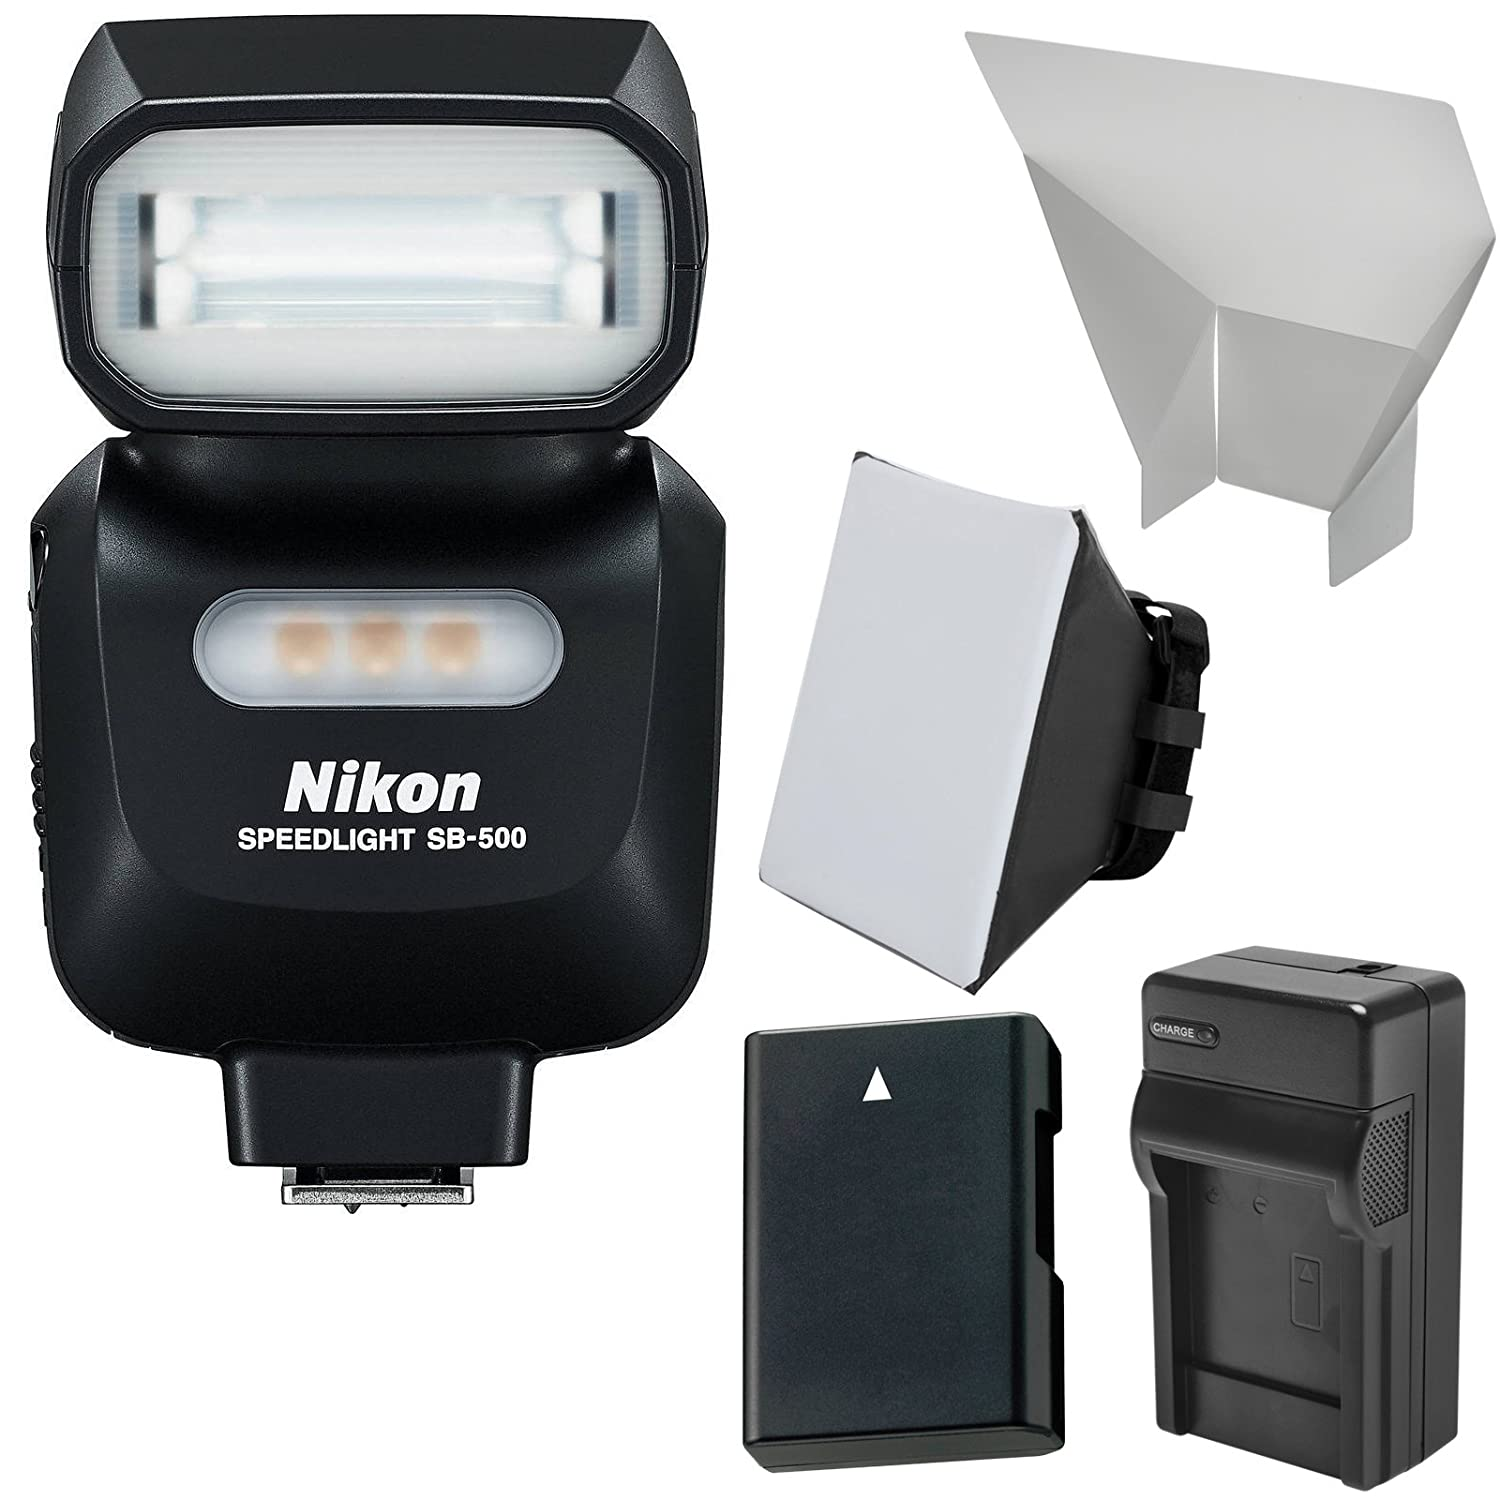 Nikon SB-500 AF Speedlight Flash & LED Video Light + EN-EL14 Battery & Charger + Softbox + Reflector Kit for D3200, D3300, D5100, D5200, D5300 Camera nikon speedlight sb 700